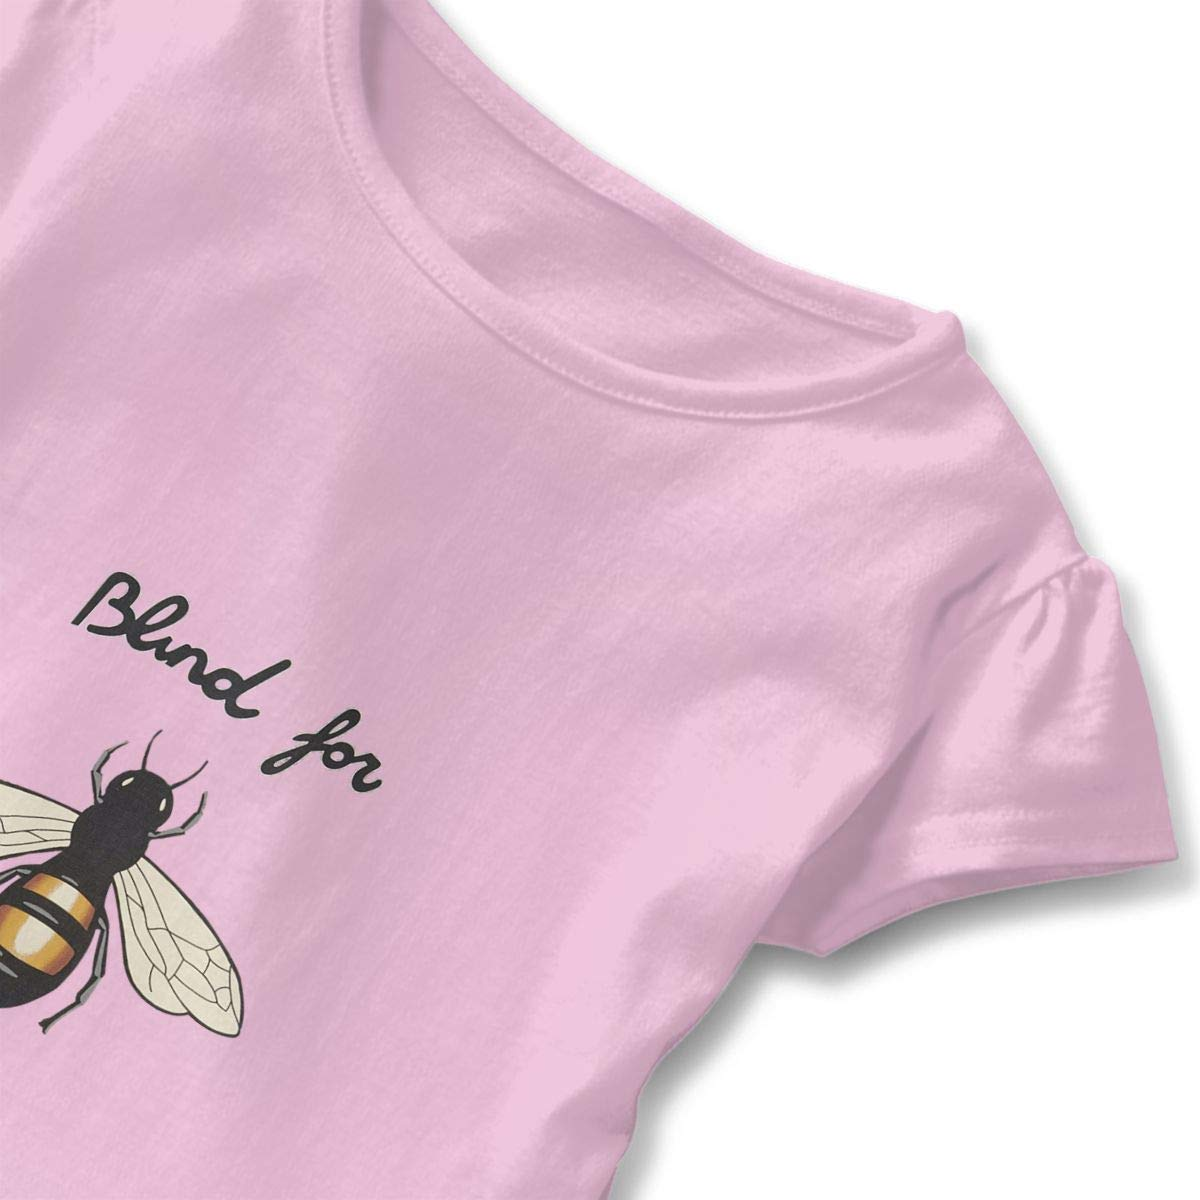 Bee Happy Super BEE Pink 2-6 T Toddler Baby Girls 100/% Cotton Short Sleeve T Shirt Top Blouse Tee Clothes